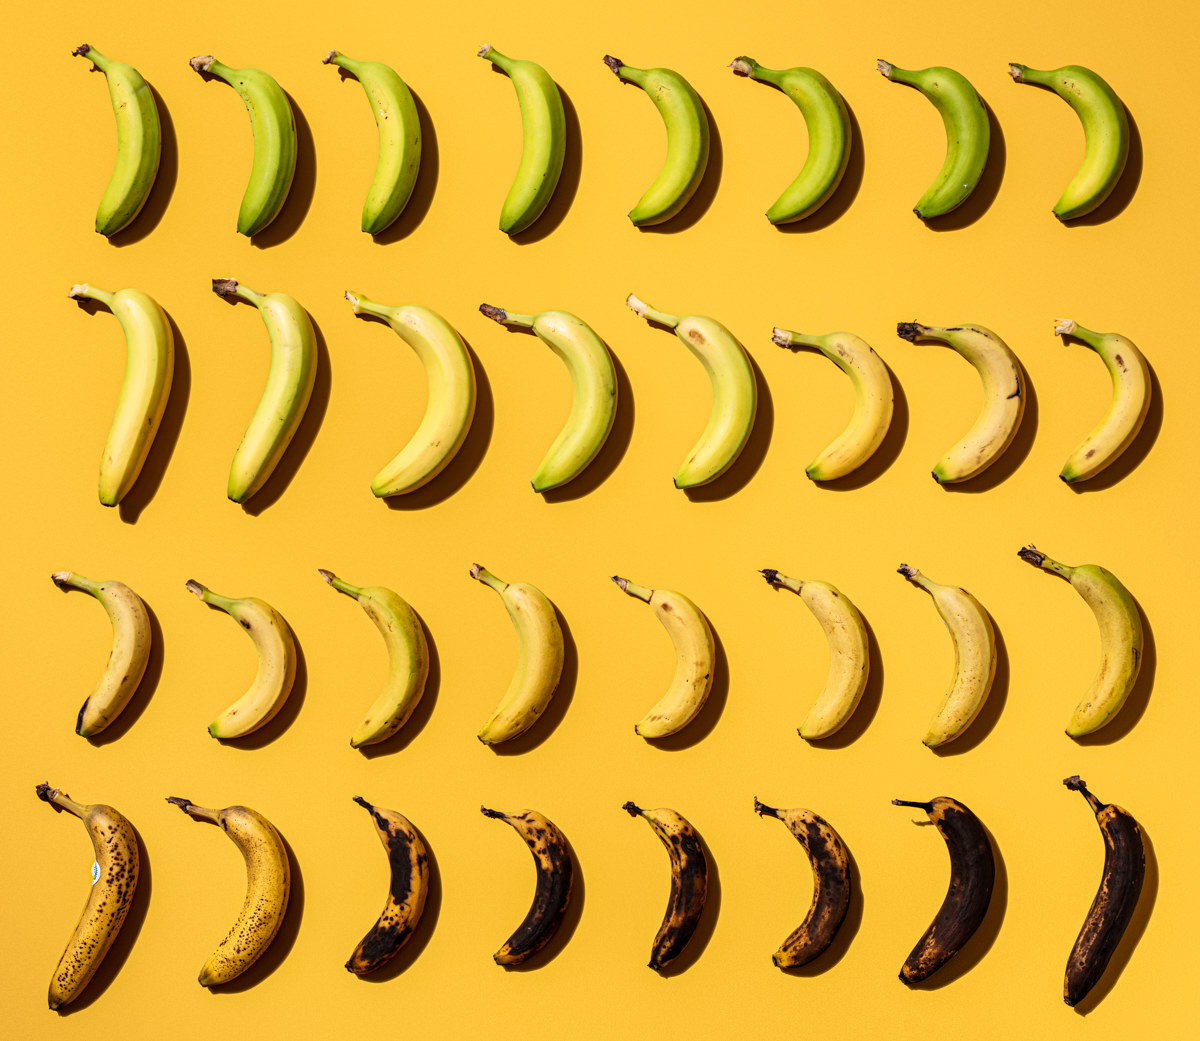 Banana ombre photograph showing every stage of banana ripeness in a chart